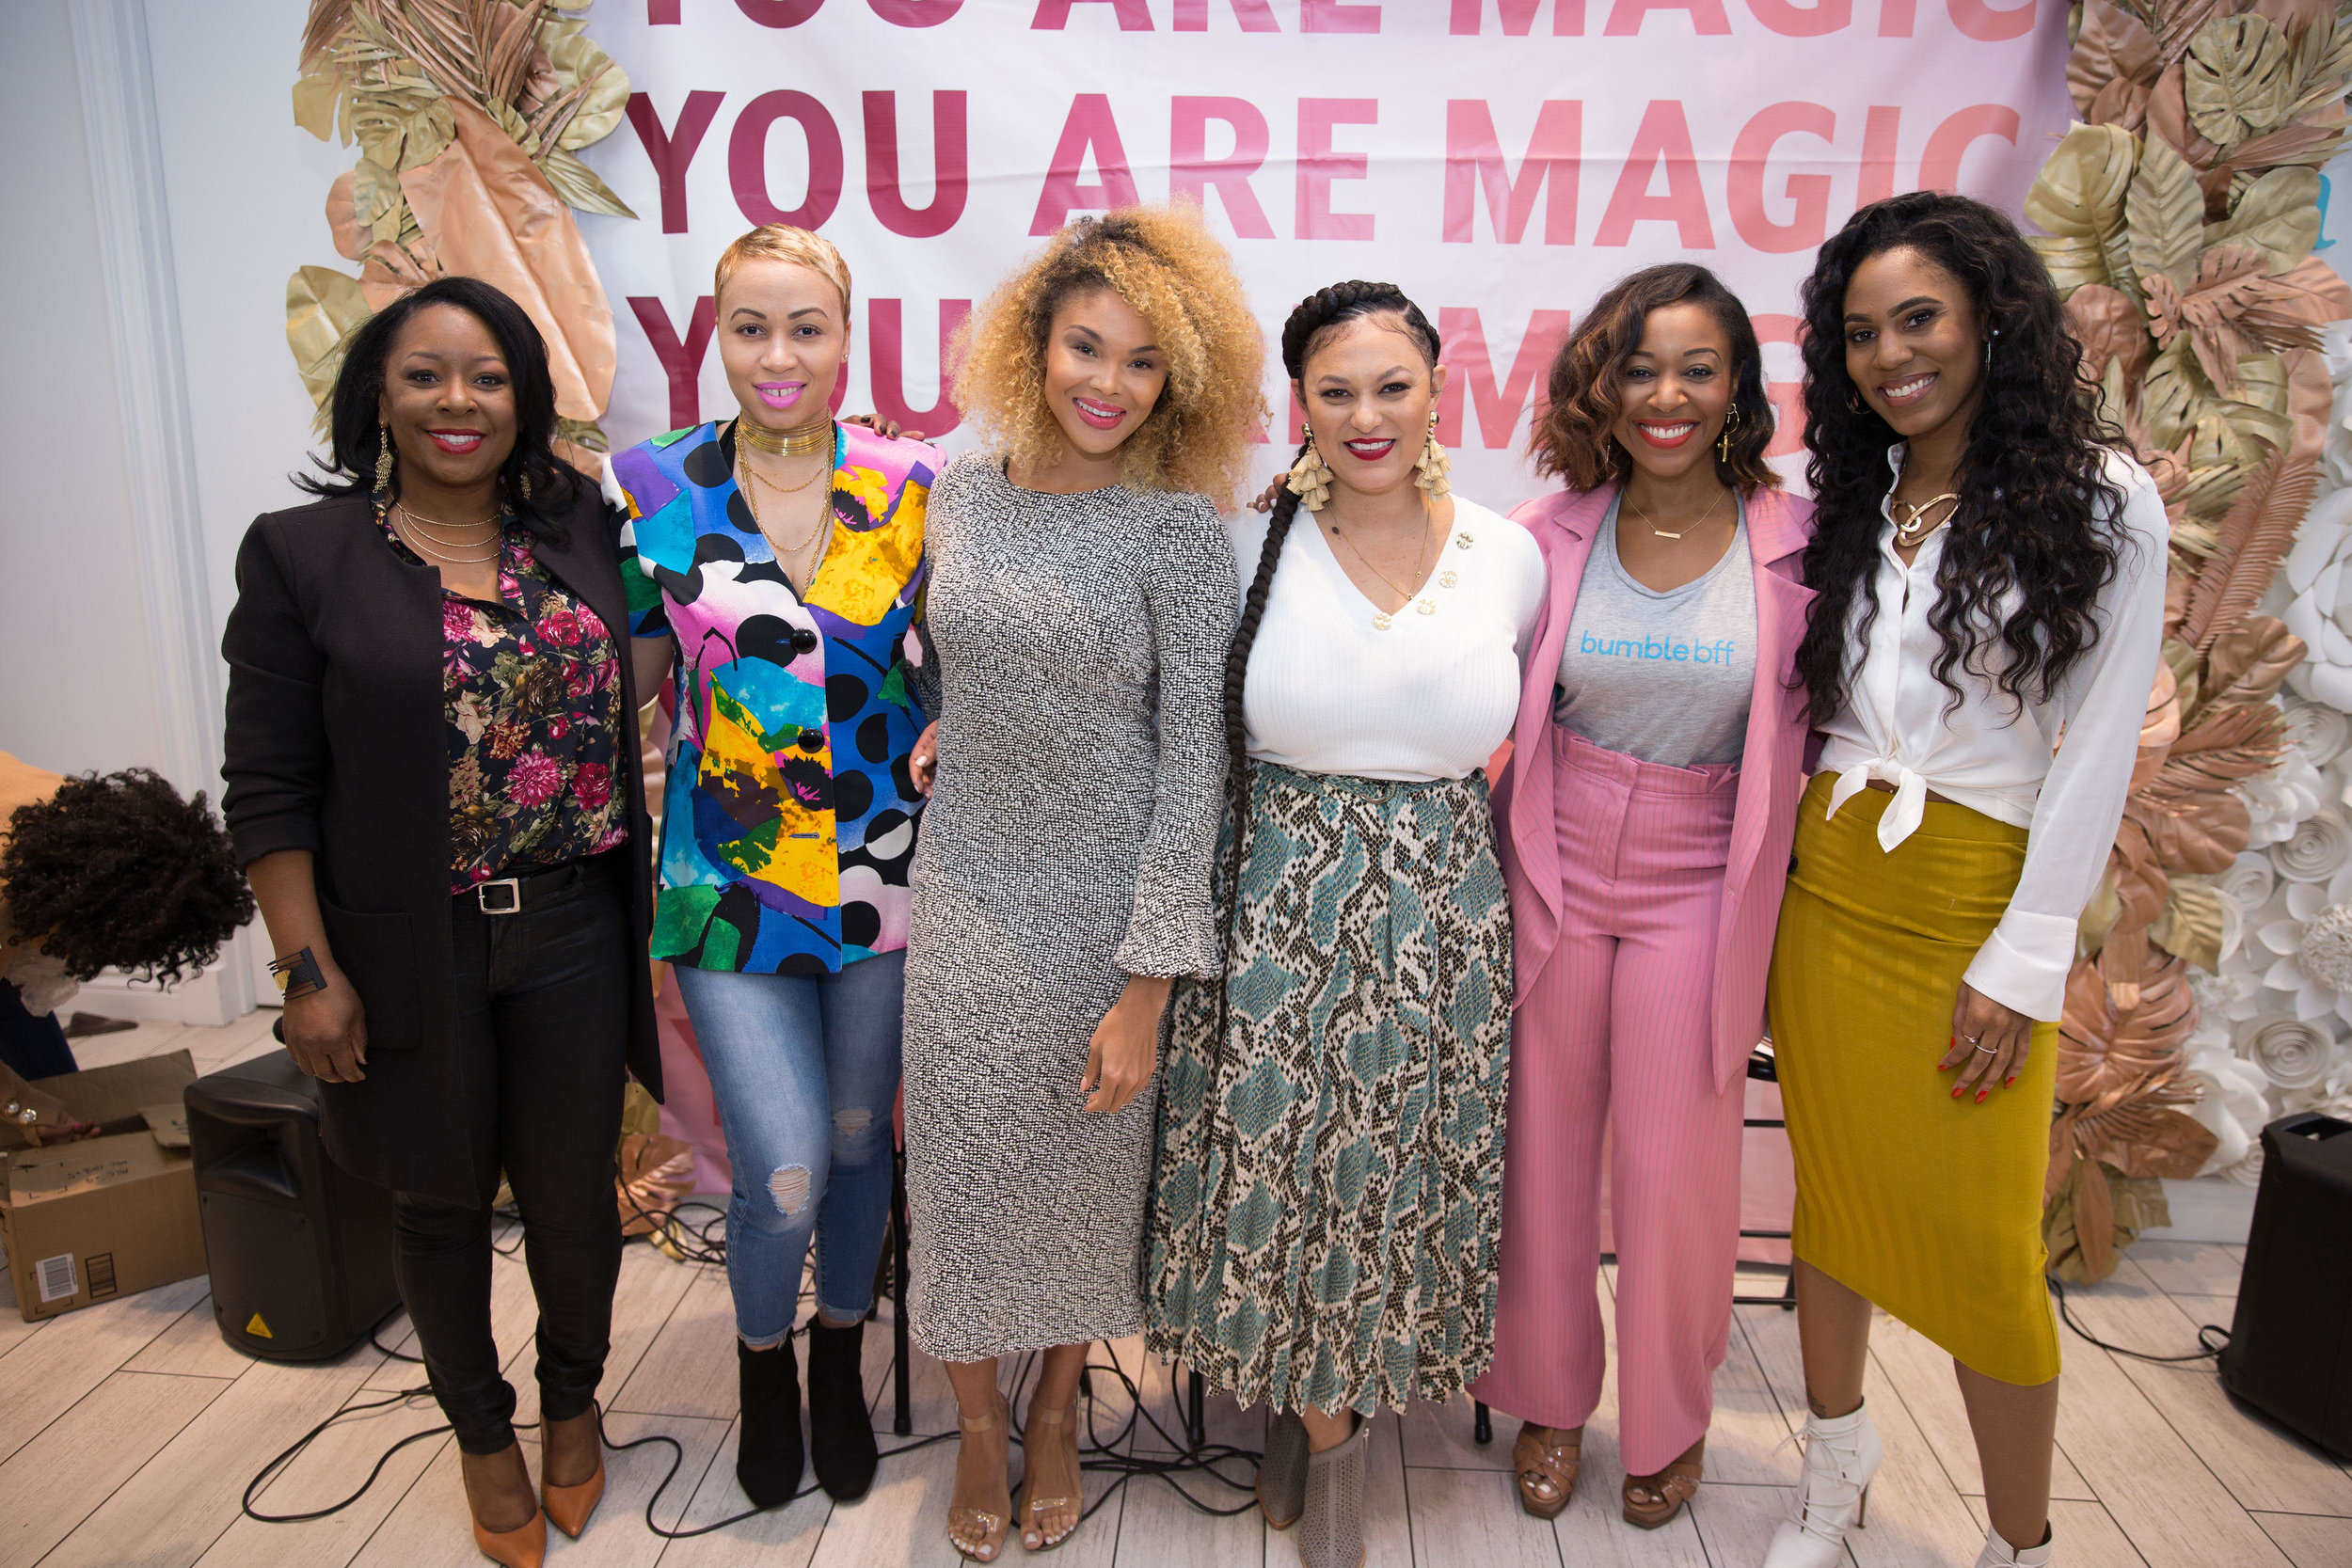 Black Girl Magic Tour - Los AngelesPresented by Marty McDonald & Boss Women Media with Sugarfina & Bumble BFFin Los Angeles, Ca on Saturday, February 16th, 2019.Courtesy Photo